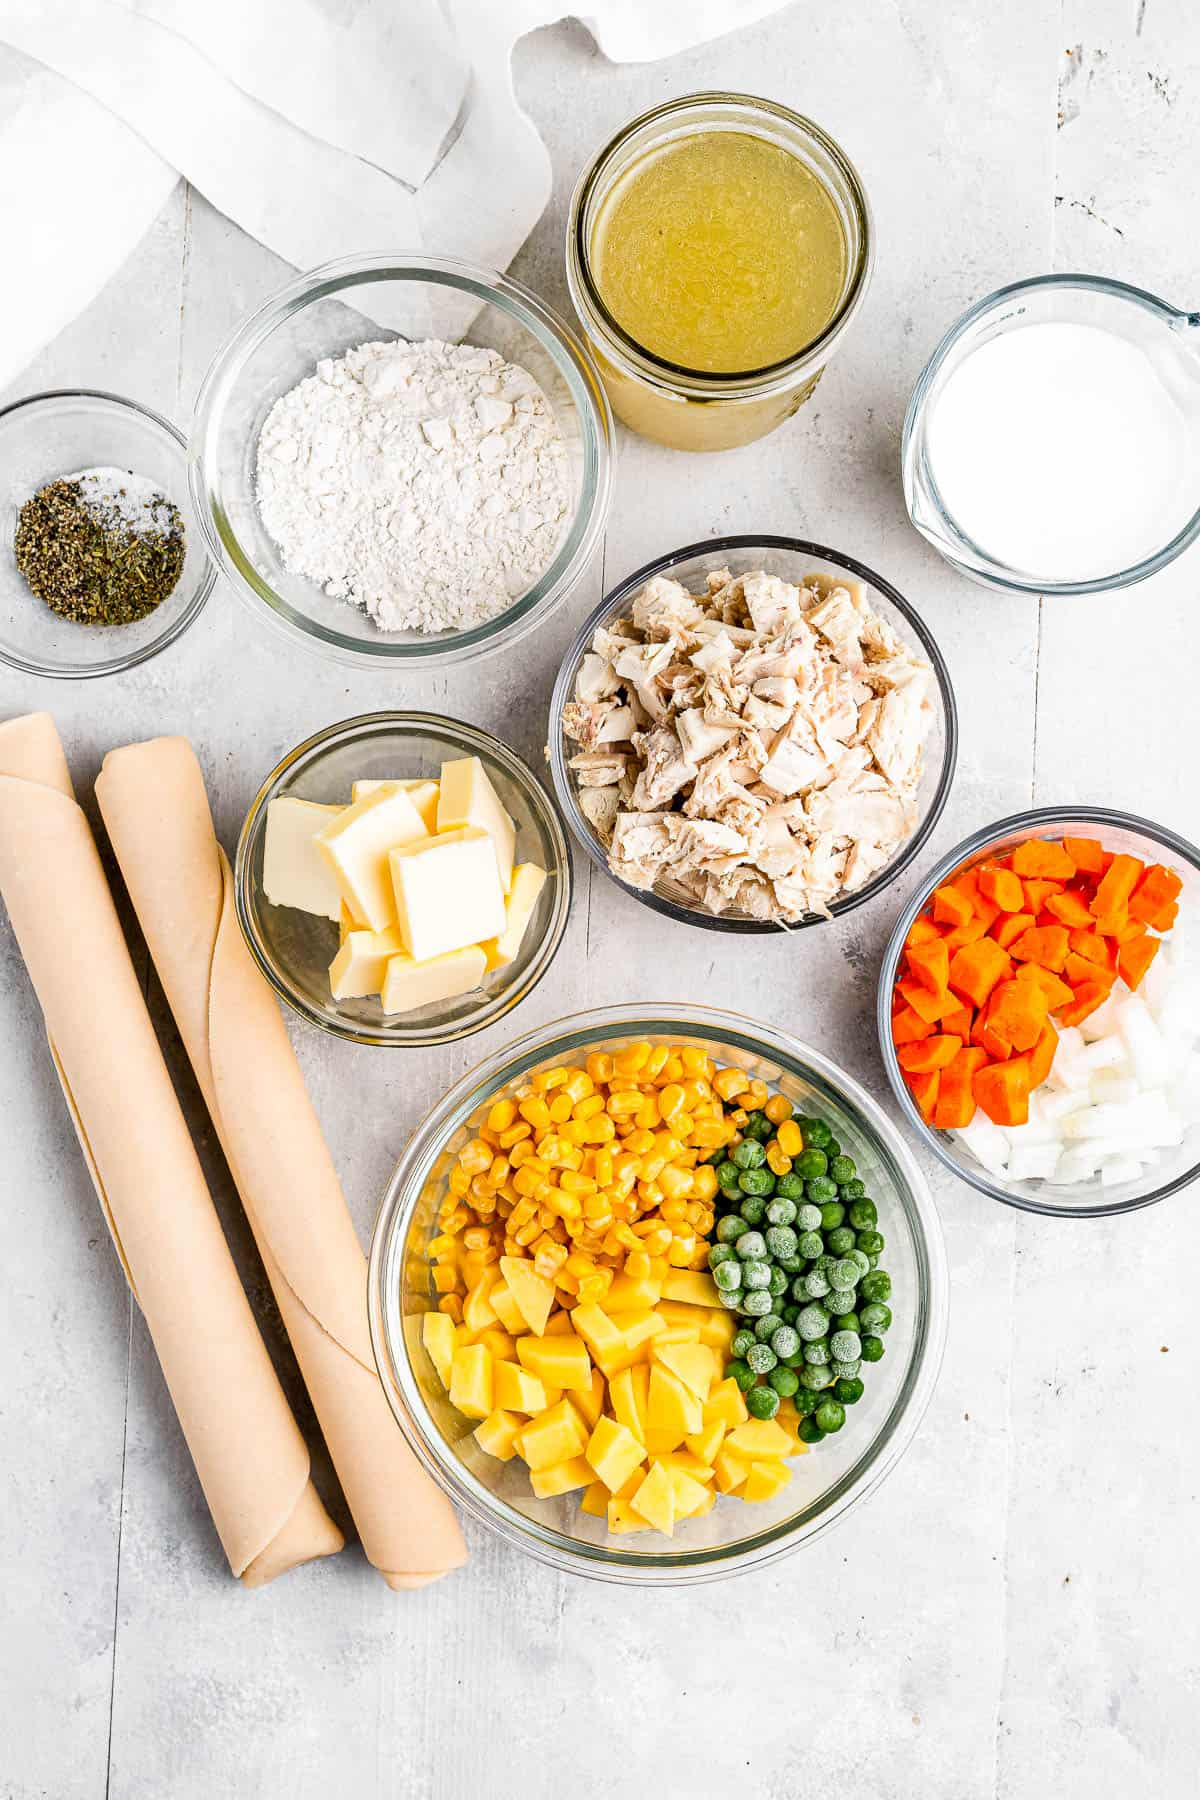 Clockwise from top: chicken broth, milk, chopped carrots and onions, a bowl of peas, corn, and diced potatoes, butter, seasonings, and flour.